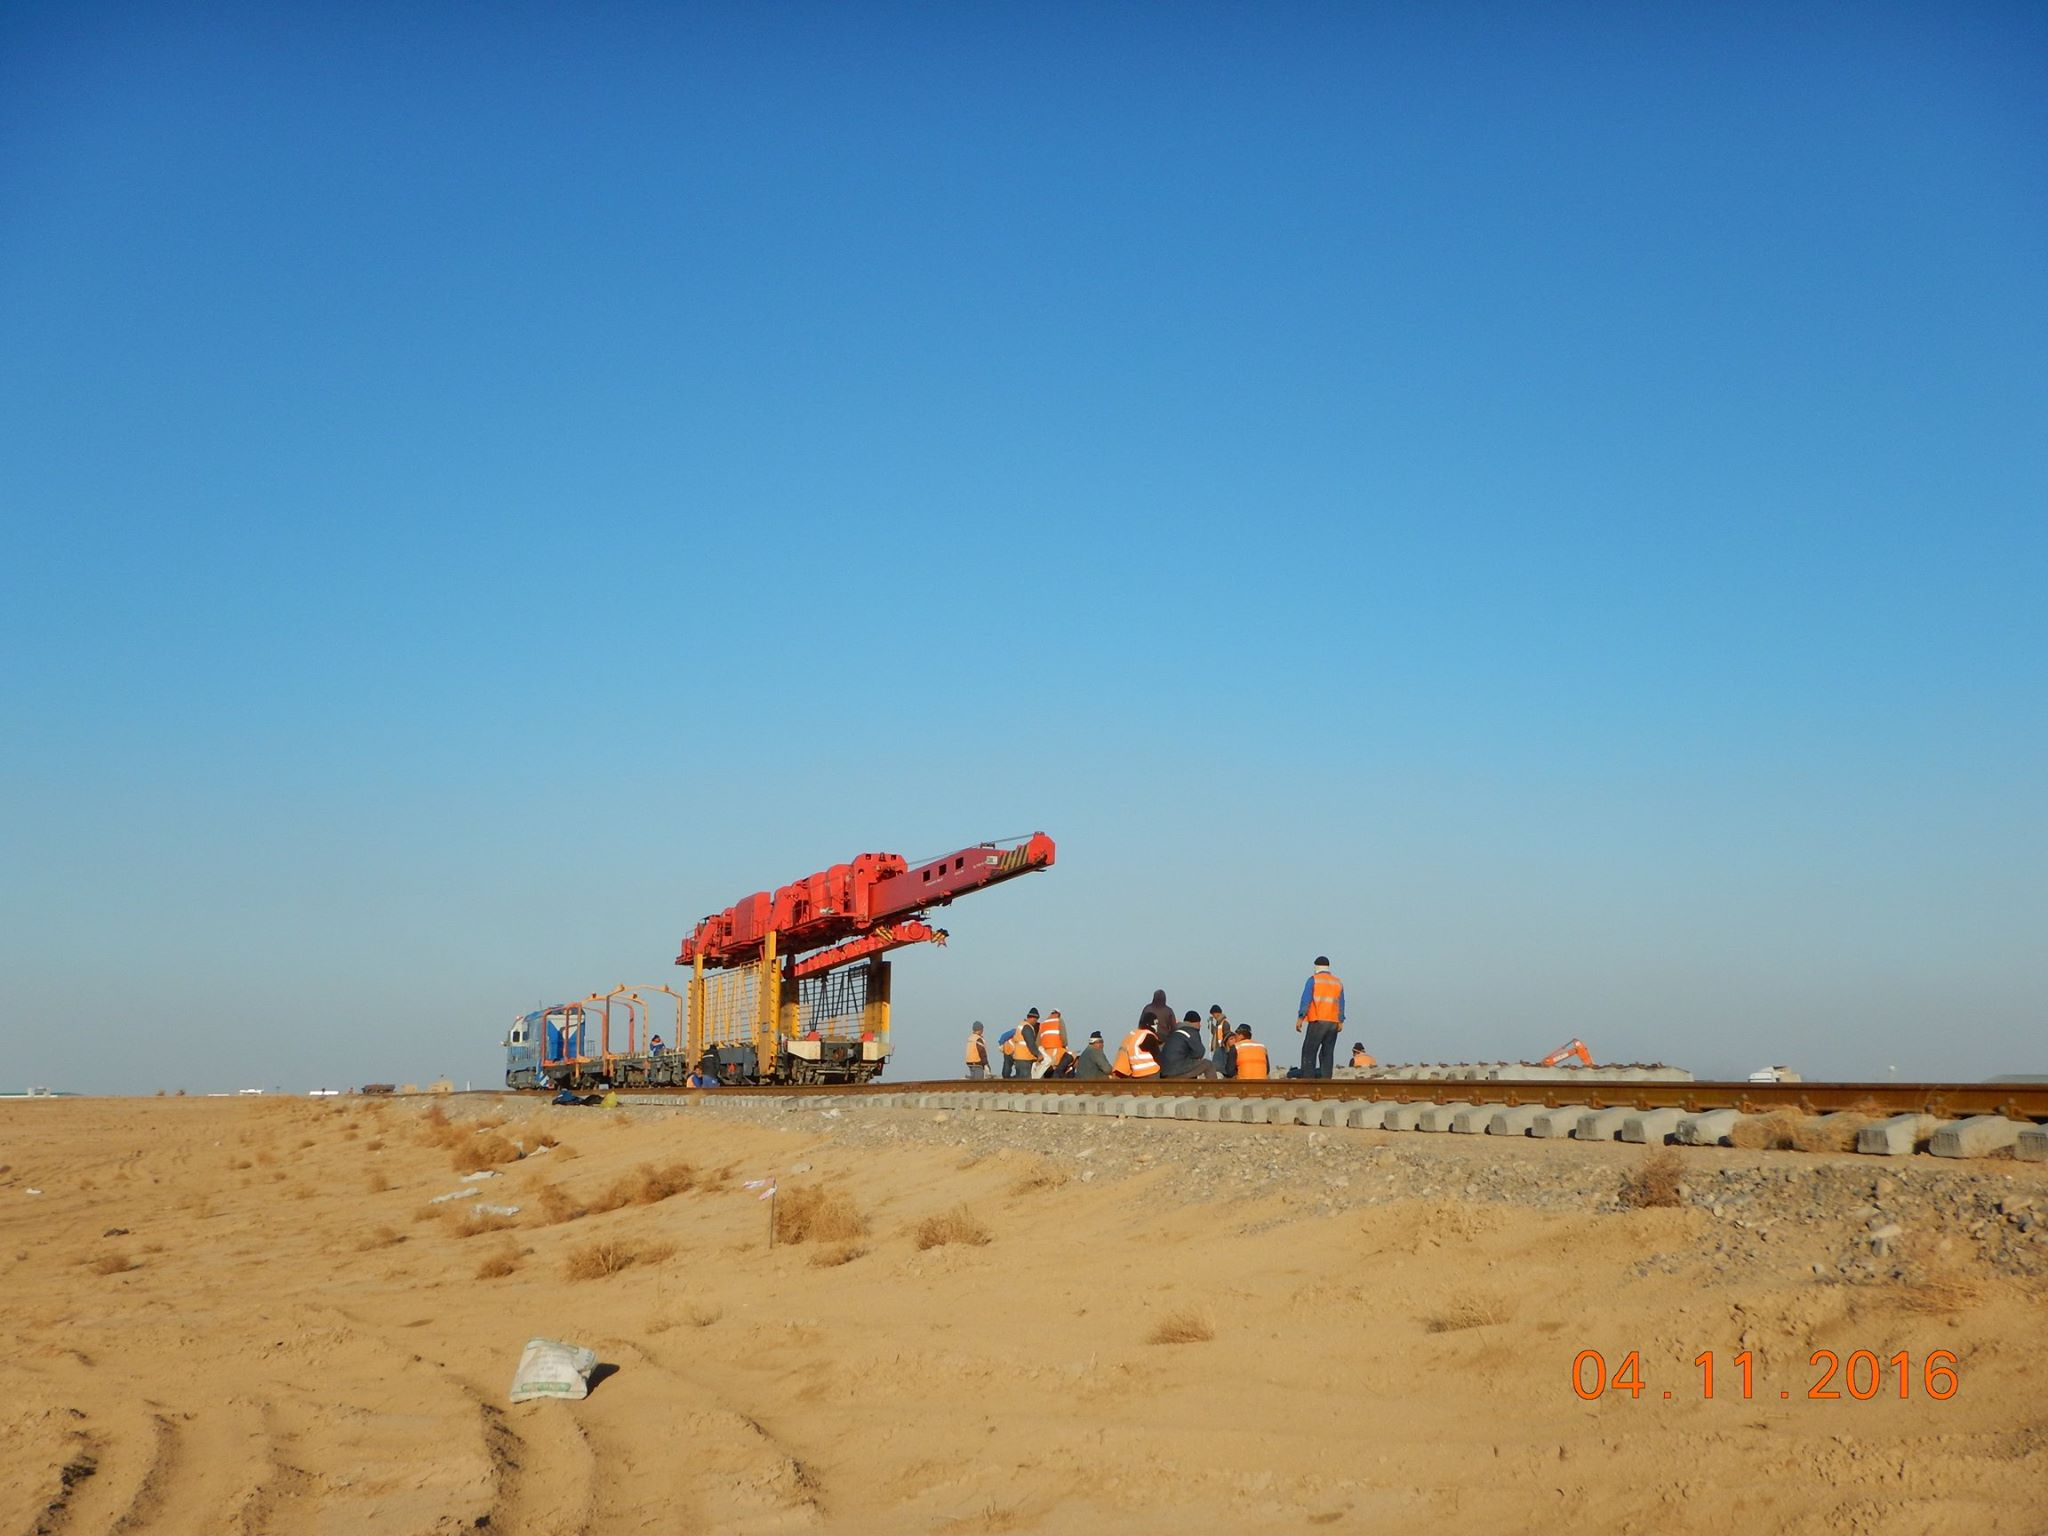 Construction of Turkmenistan to Afghanistran railway